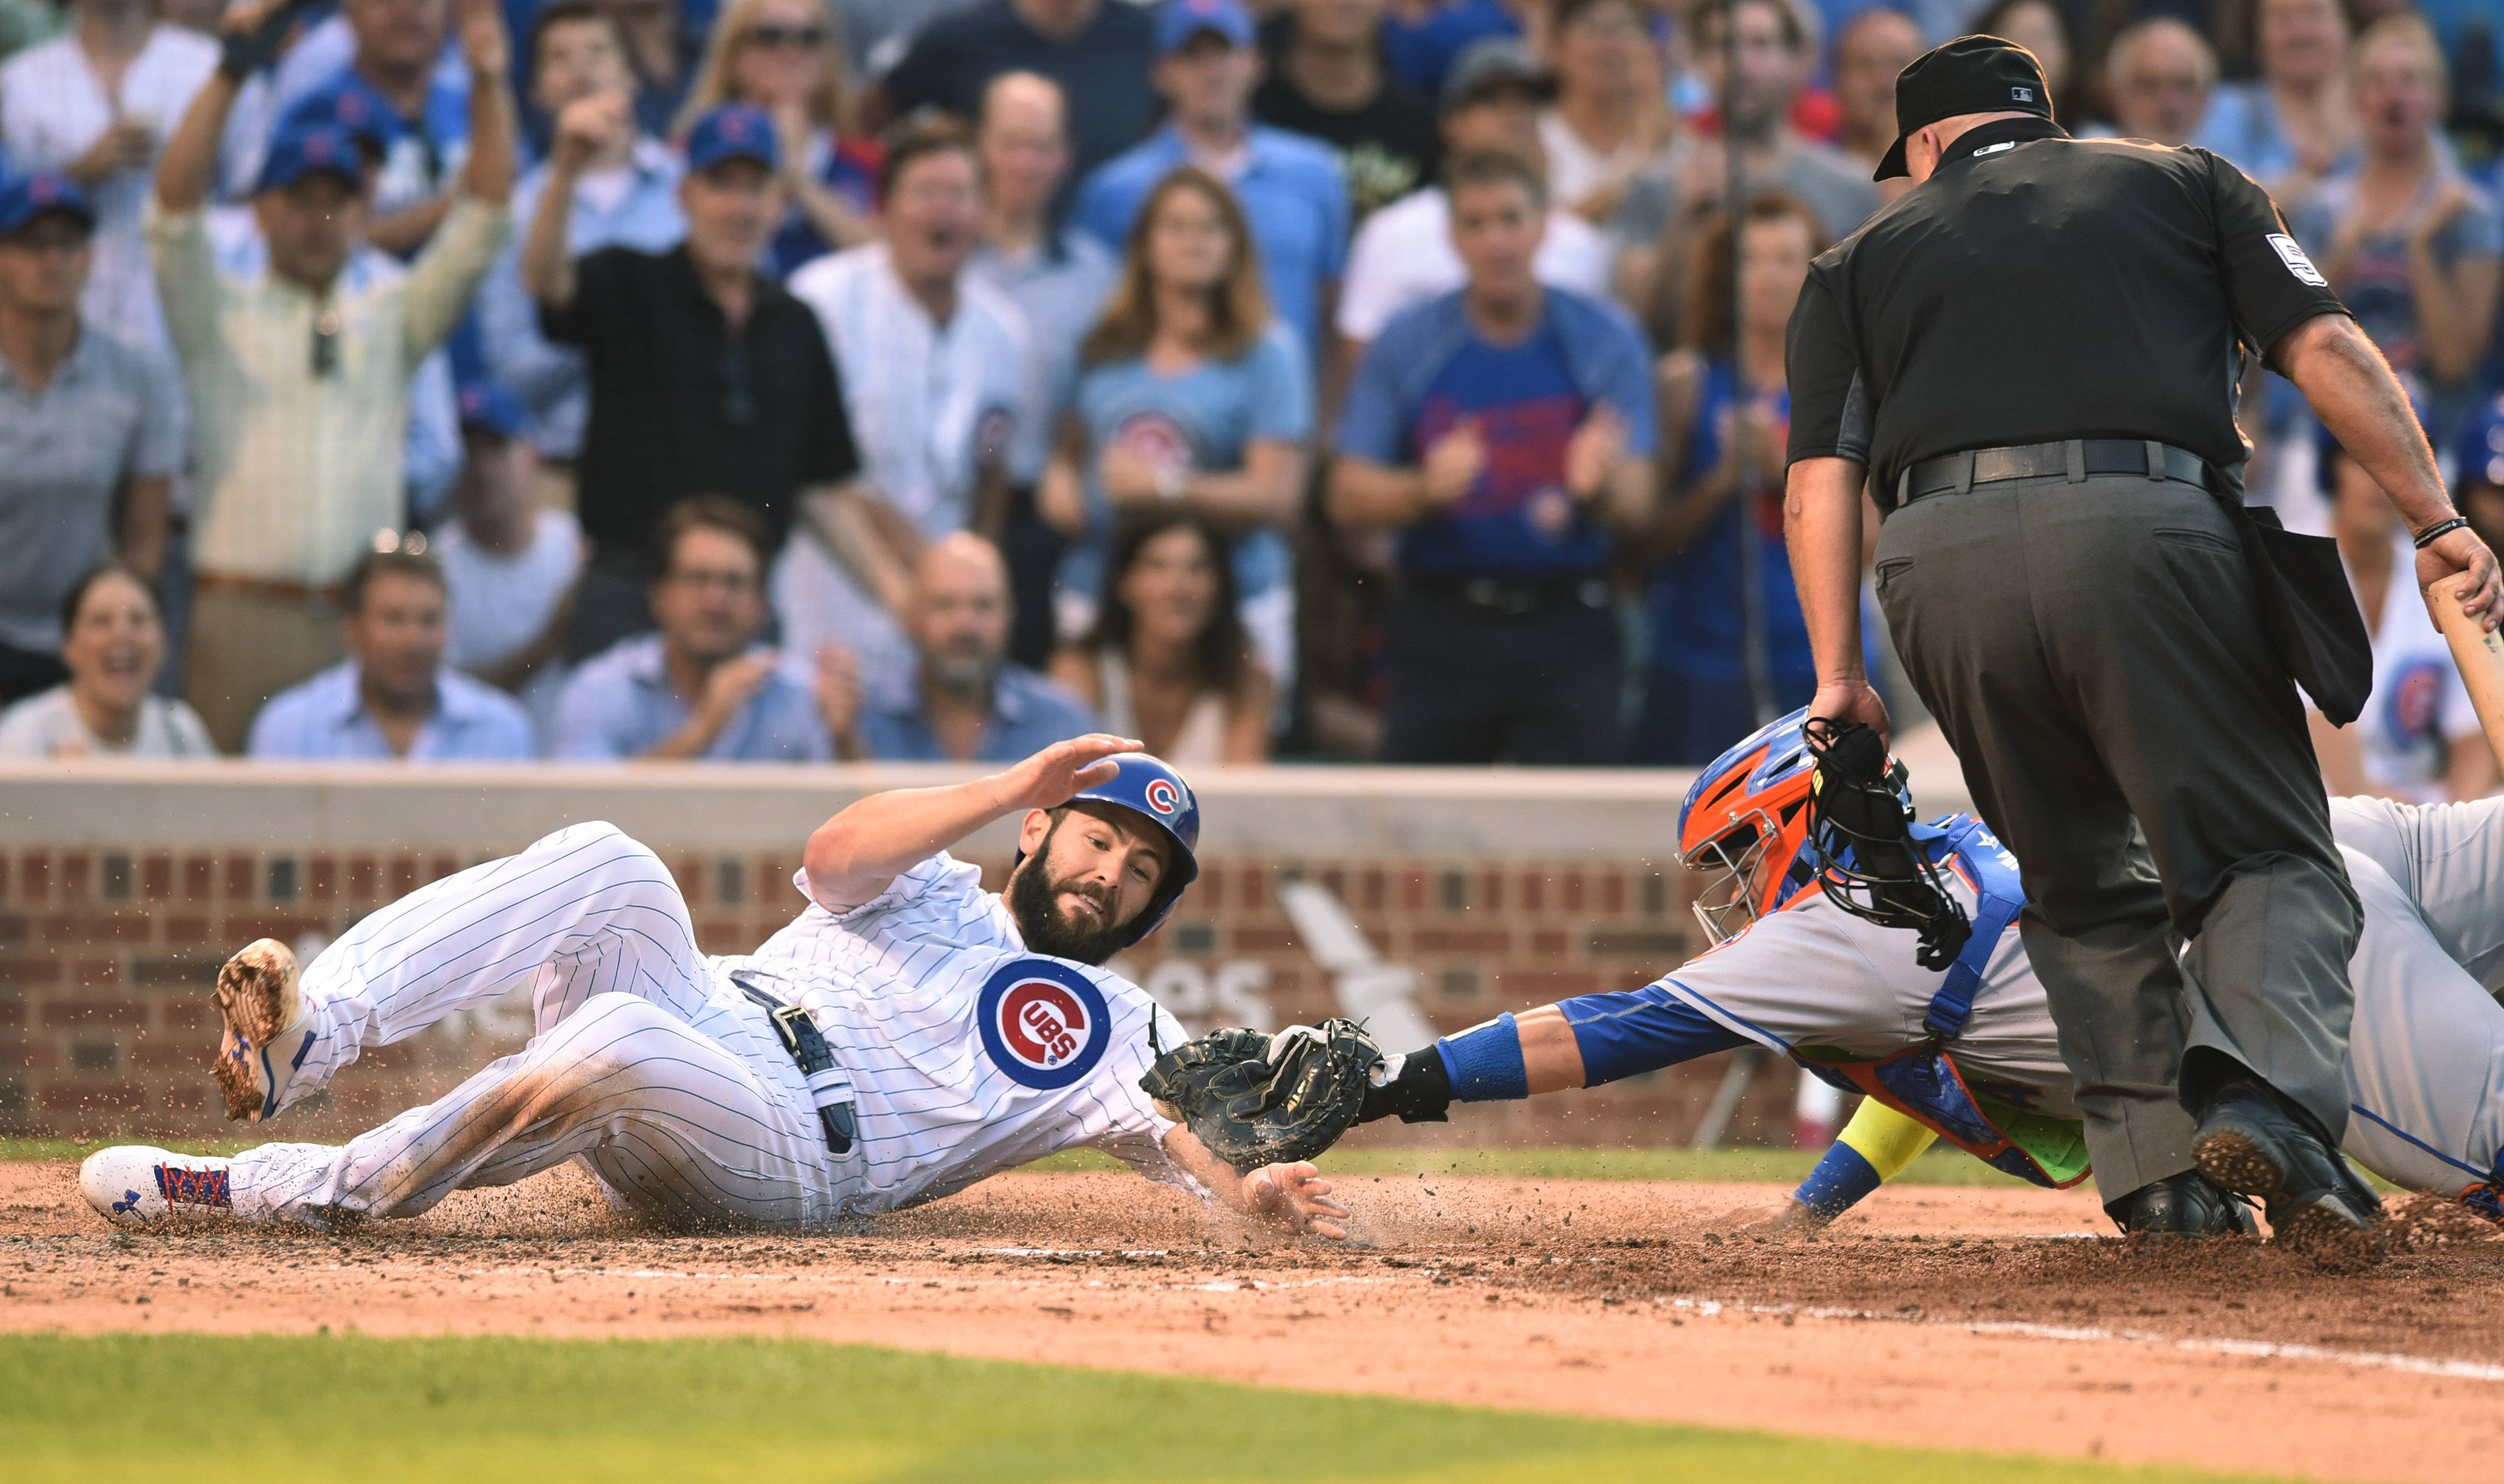 Jake Arrieta of the Chicago Cubs gets tagged out at the plate by New York Mets catcher Rene Rivera during the bottom of the fourth inning of Tuesday's game at Wrigley Field in Chicago.